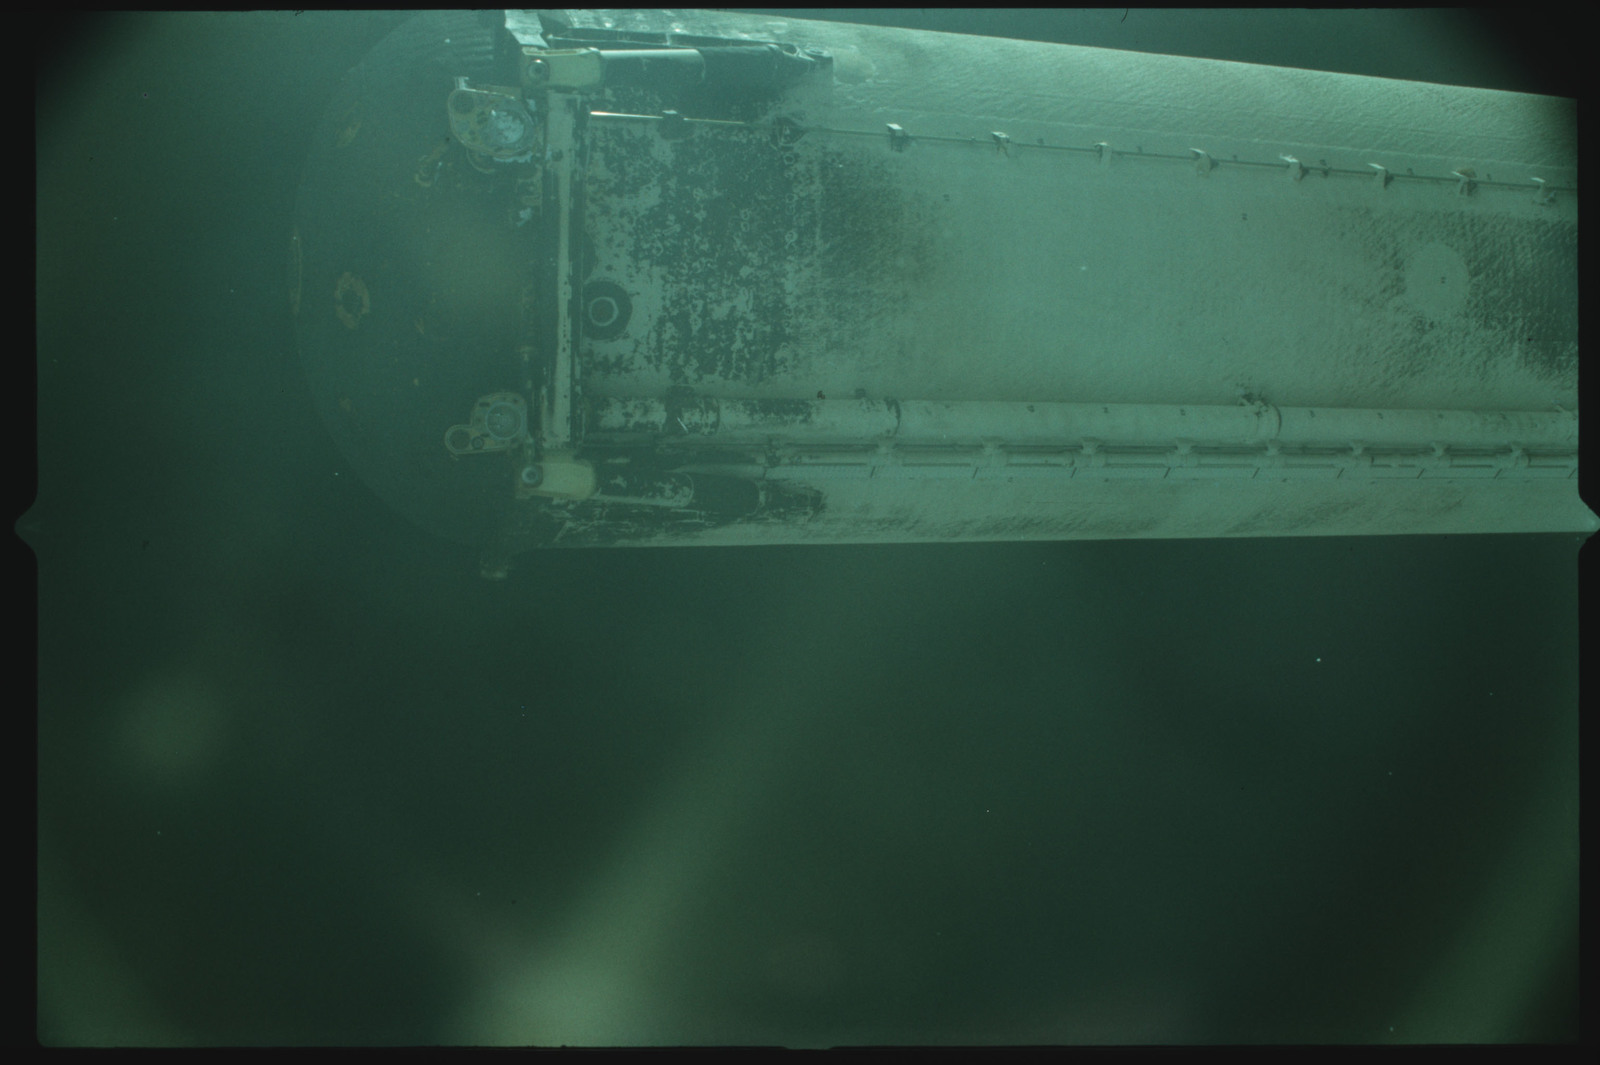 S02-500-943 - STS-002 - View of the External Tank after separation from Columbia during the STS-2 mission